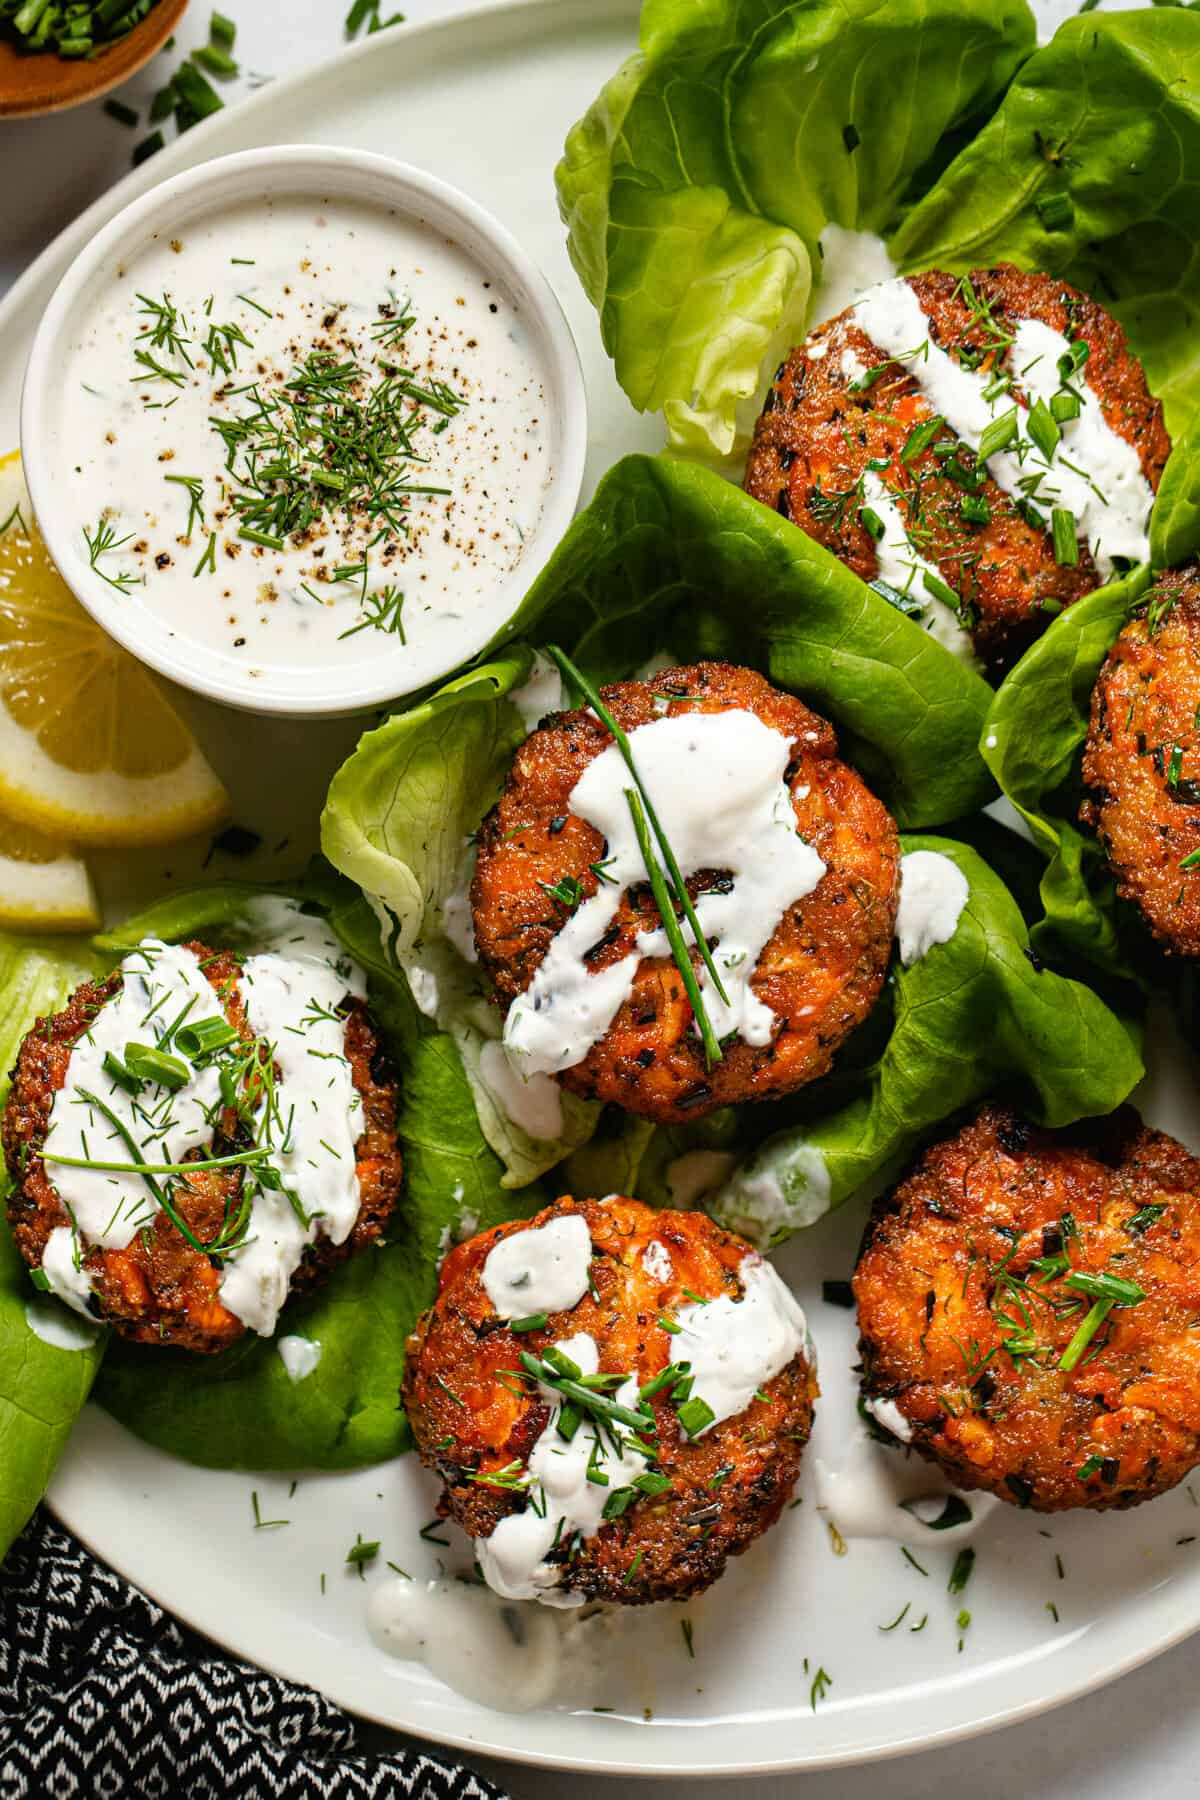 White plate with salmon patties wrapped in lettuce drizzled with tzatziki